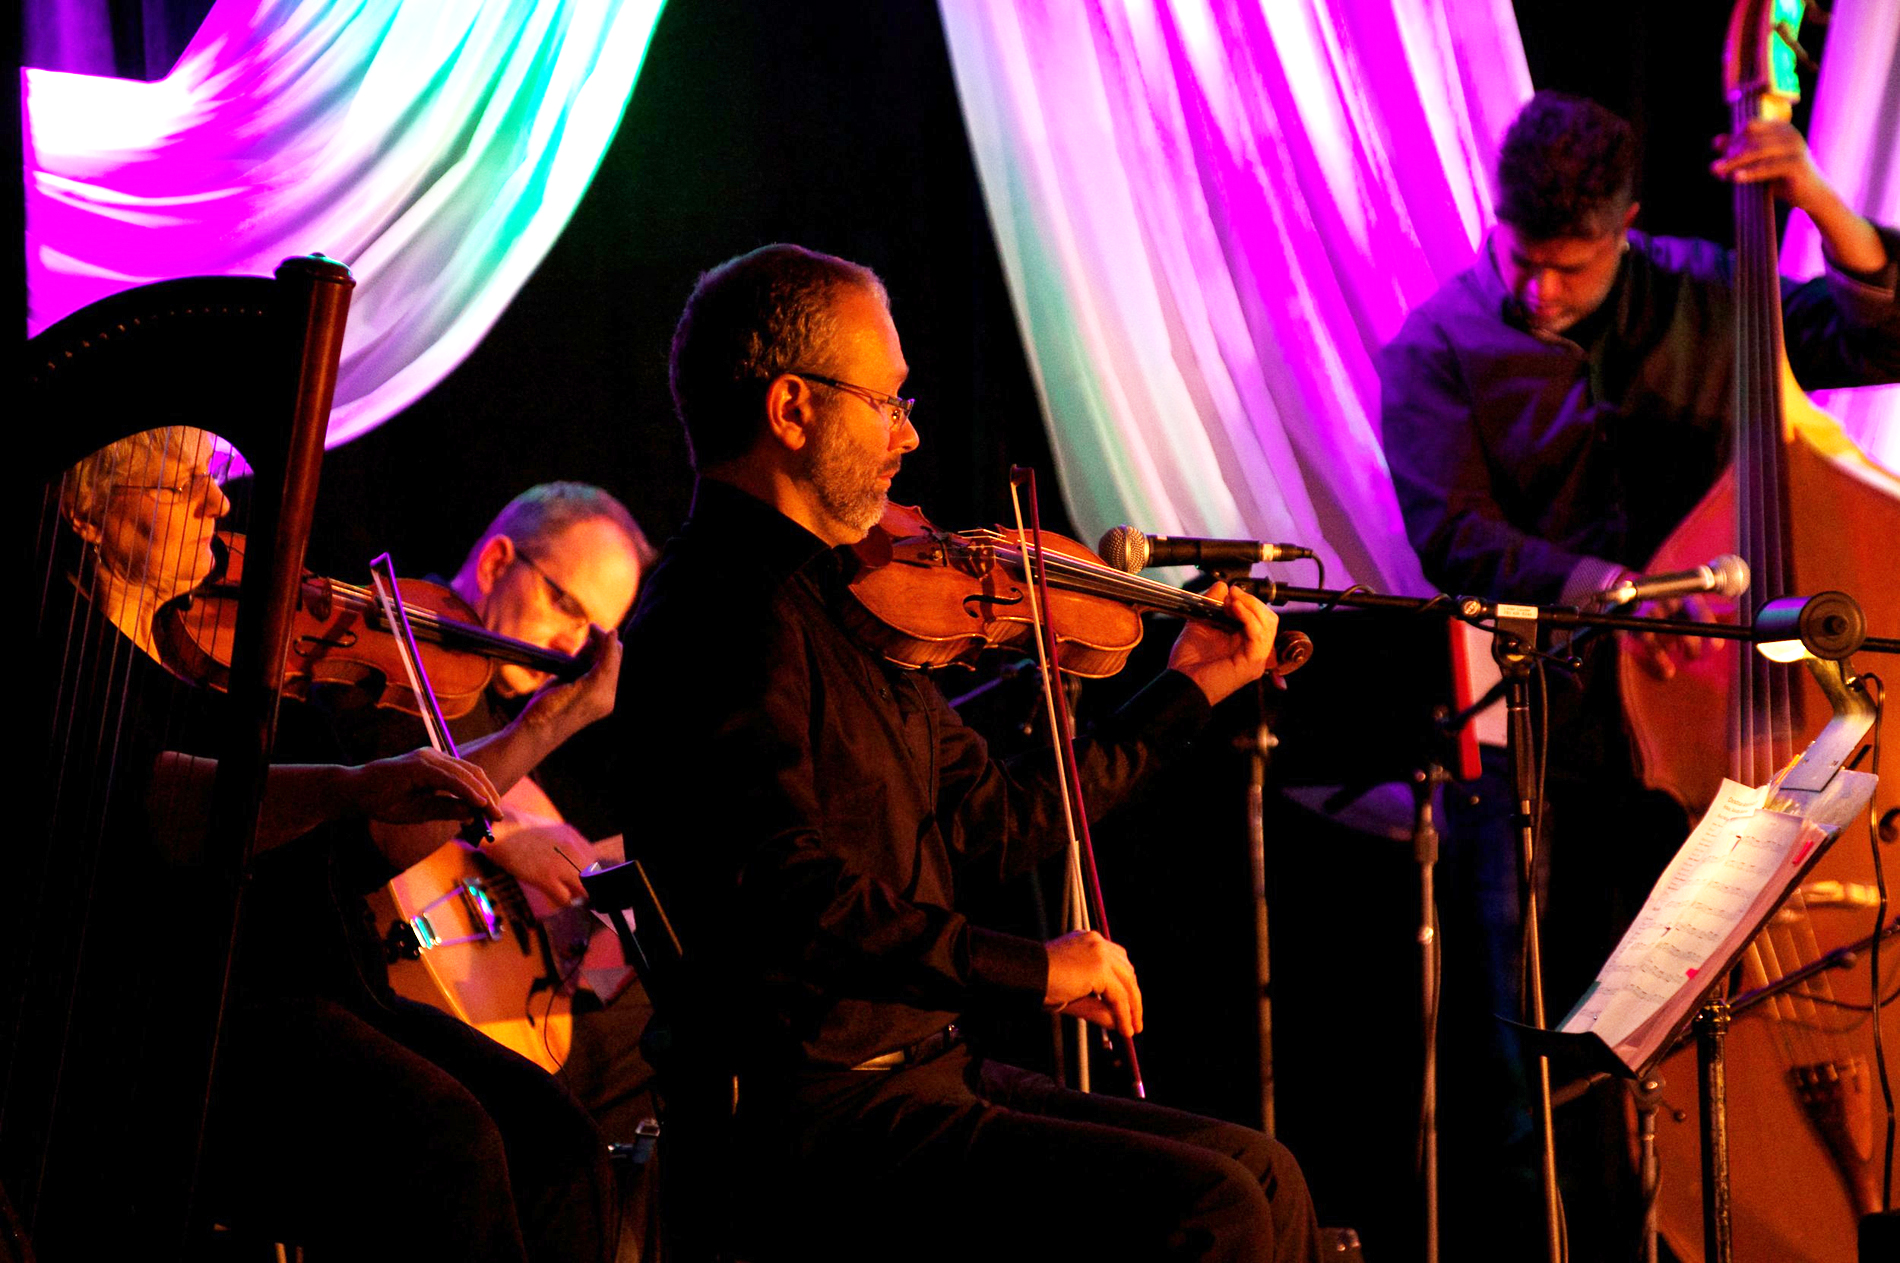 Saturday, January 12  Northern Lights Beer Garden & Ice Bar @ 12:00 pm New Moon Pavilion @ 1:15 pm The Hearth @ 3:00 pm  The Carrot Community Arts Coffeehouse @ 6:15 pm